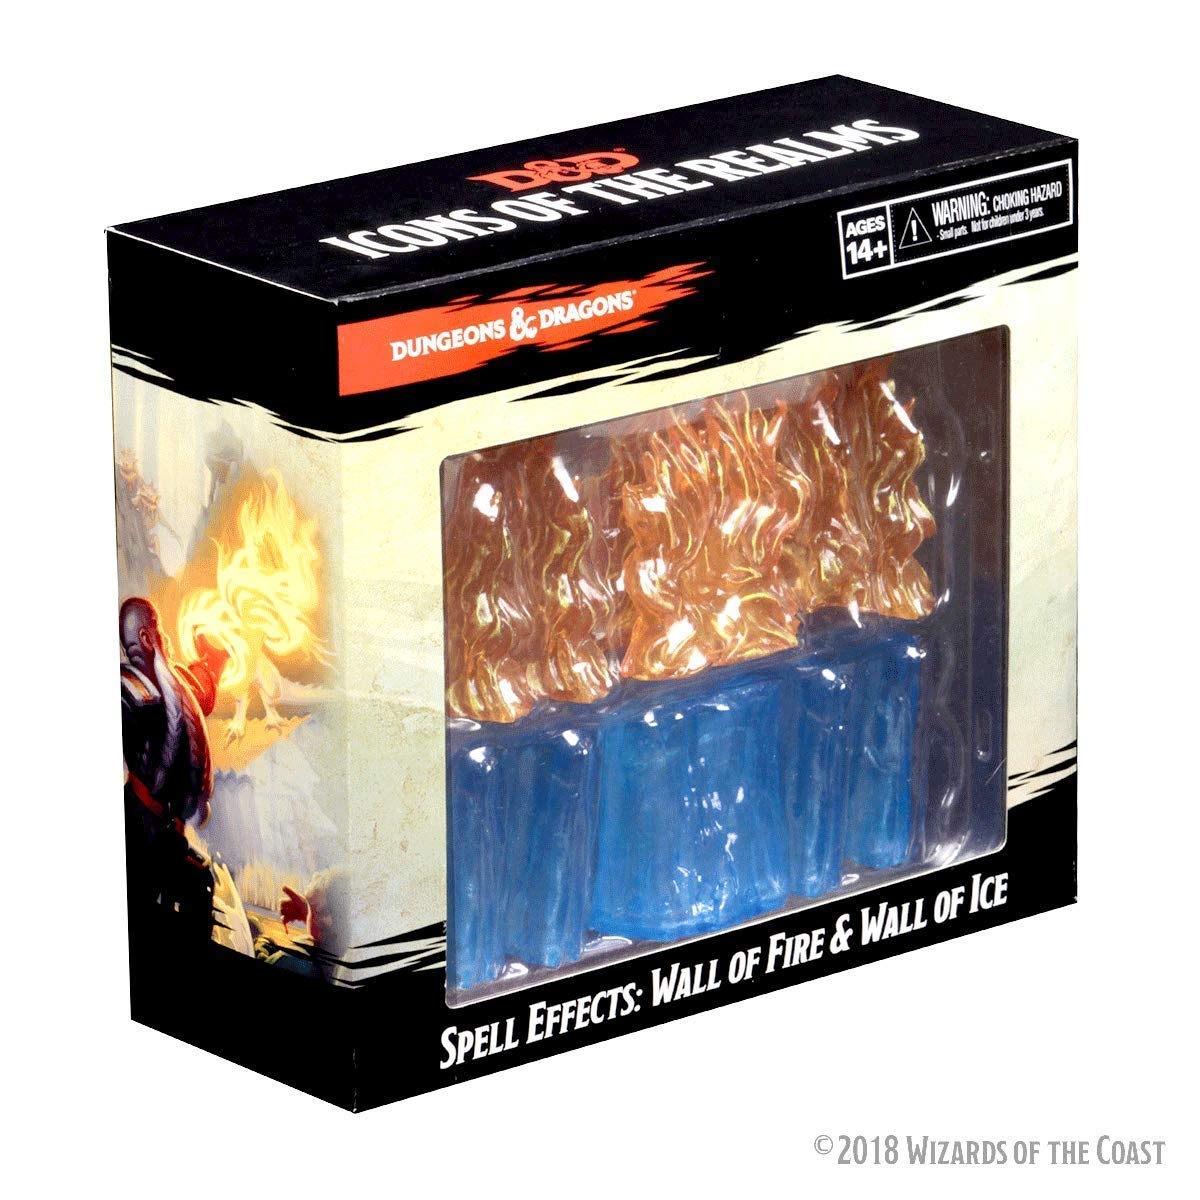 Dungeons And Dragons: Spell Effects Miniatures - Wall Of Fire And Wall Of Ice